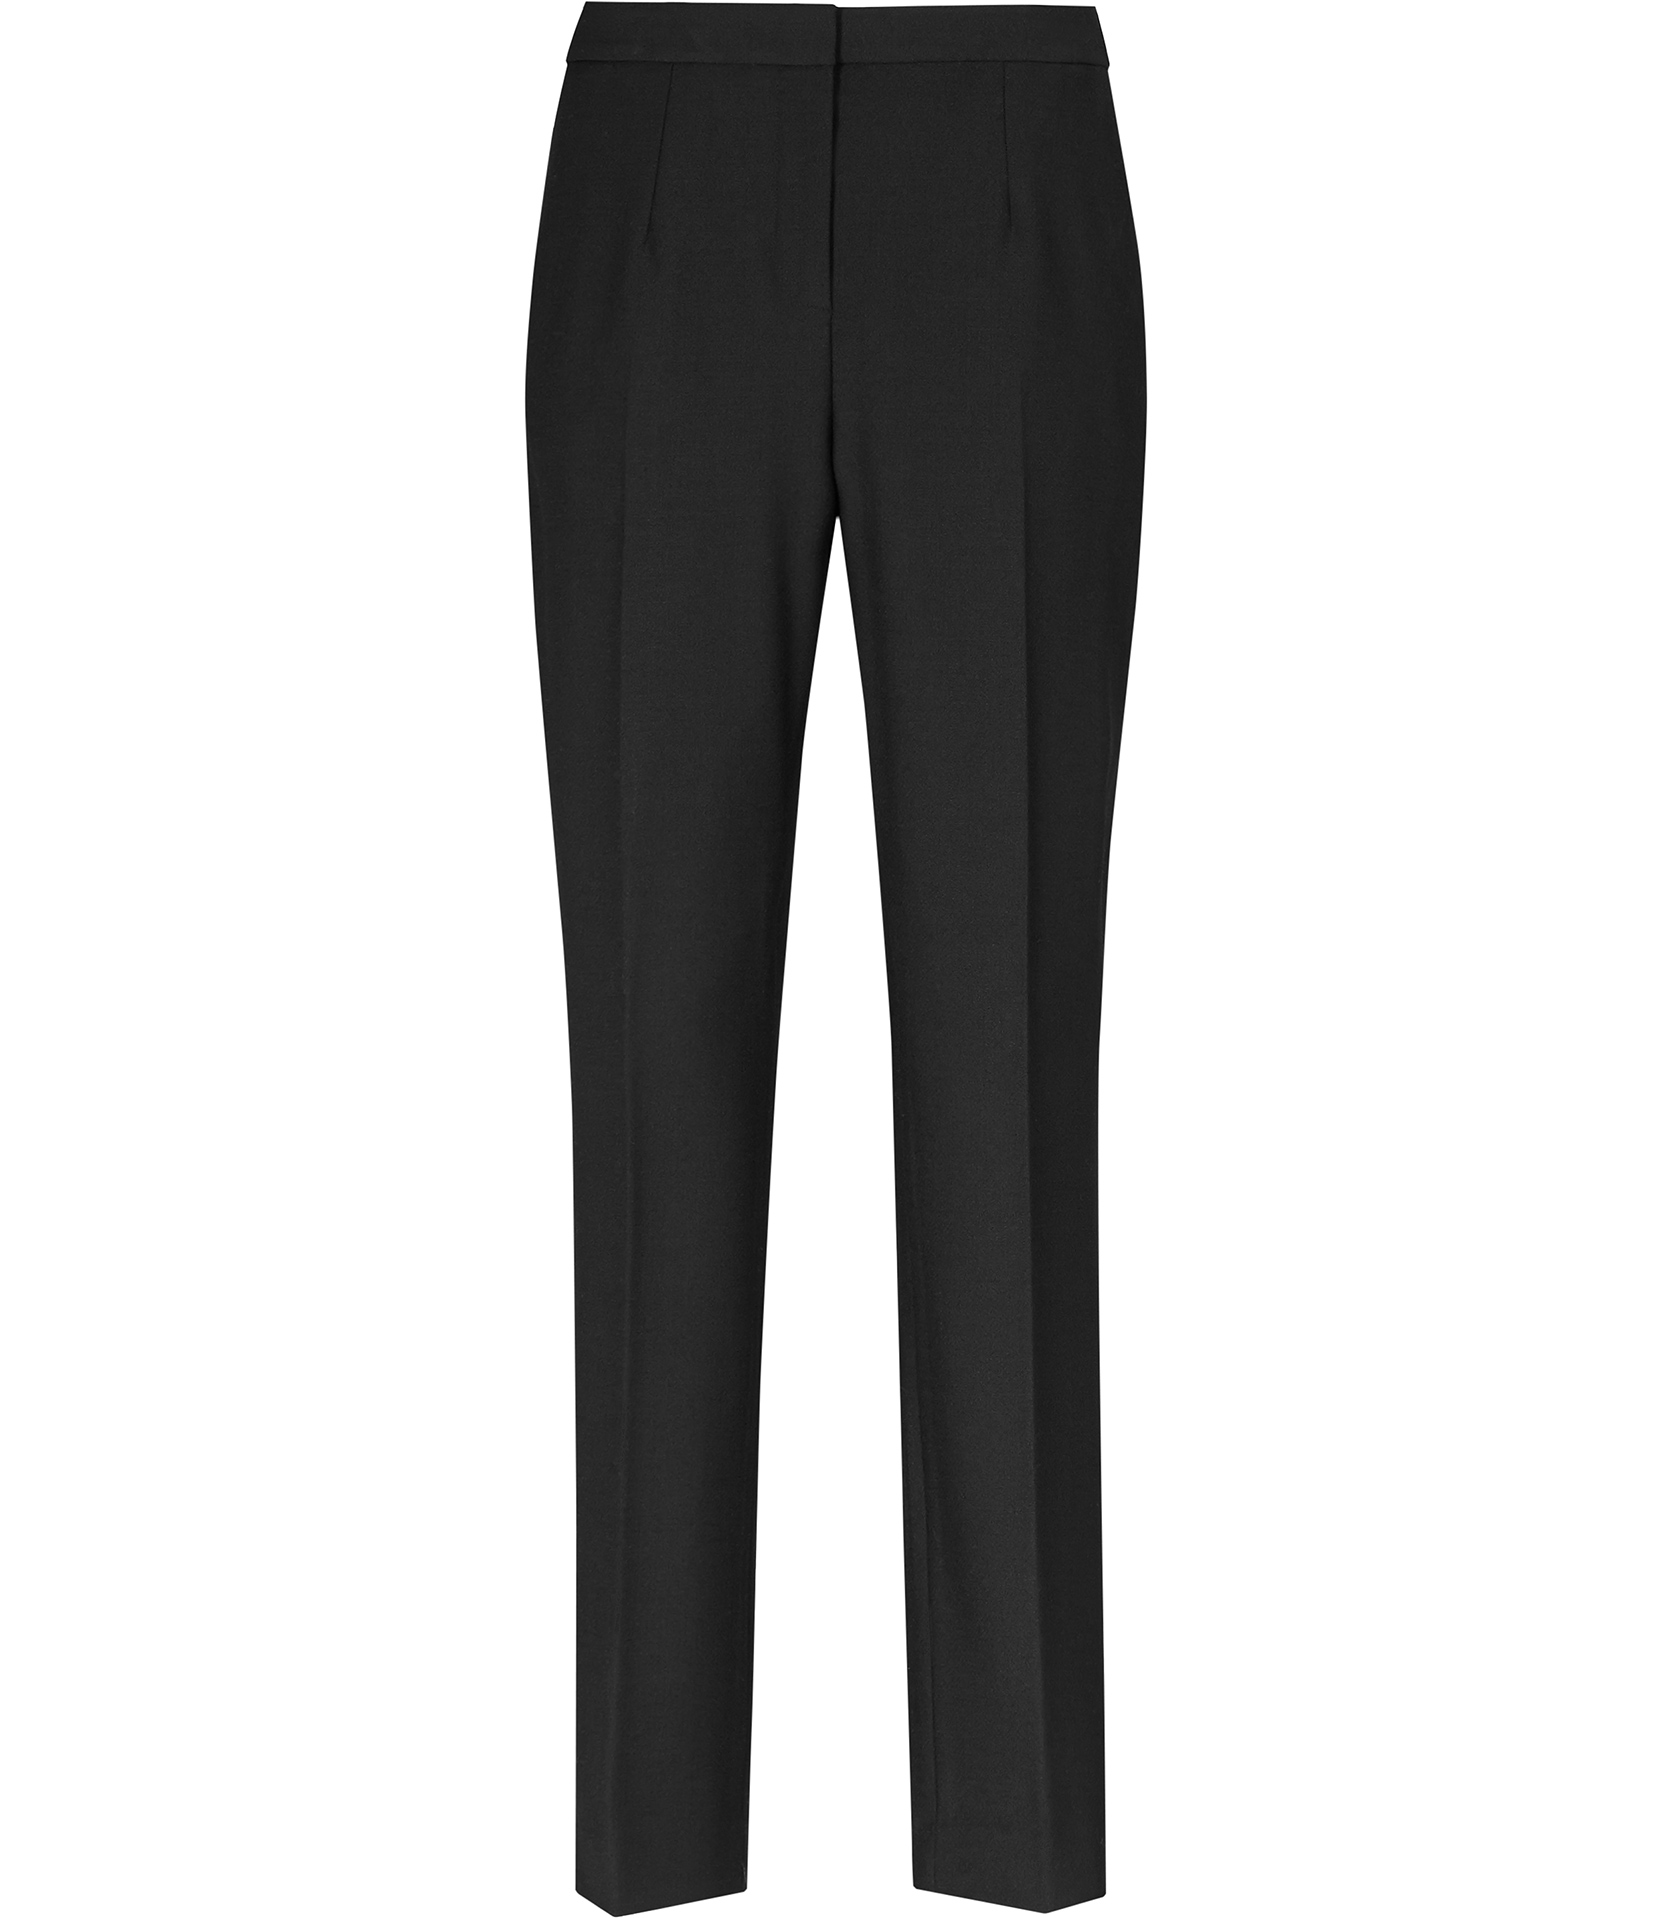 Arola Black Straight Cut Fitted Trousers - REISS